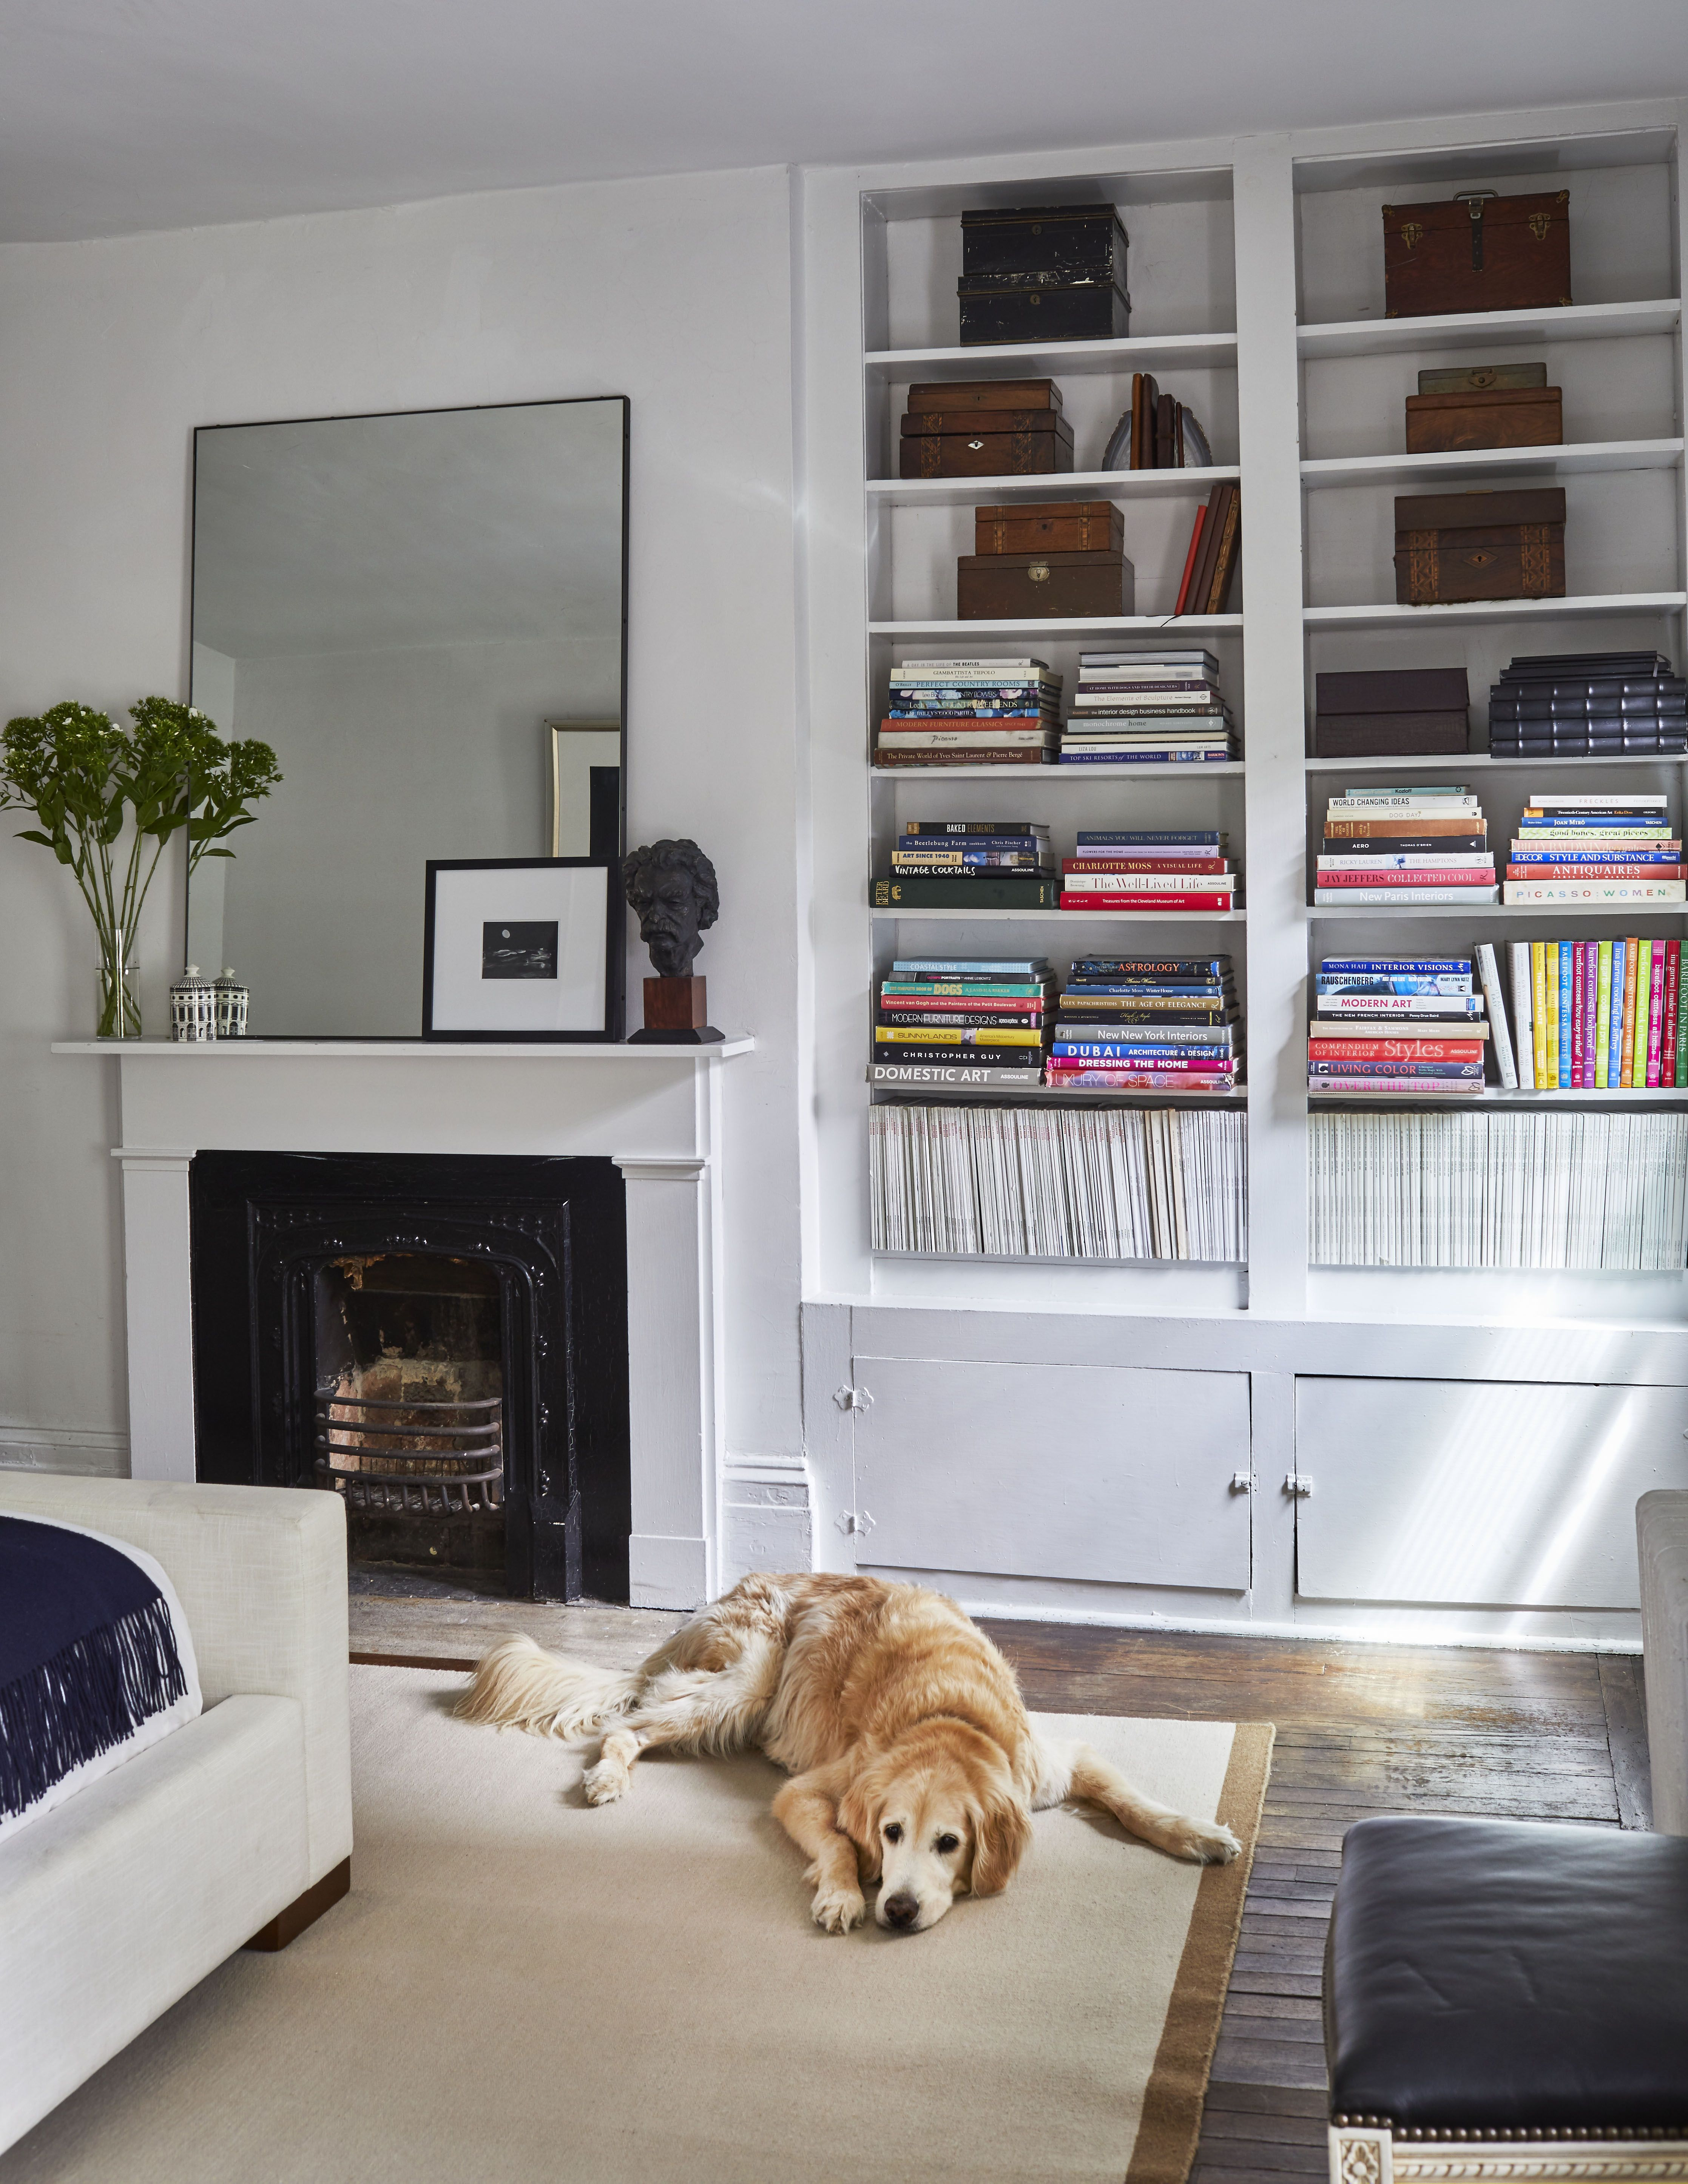 A Breakup Inspired This Greenwich Village Apartment Makeover